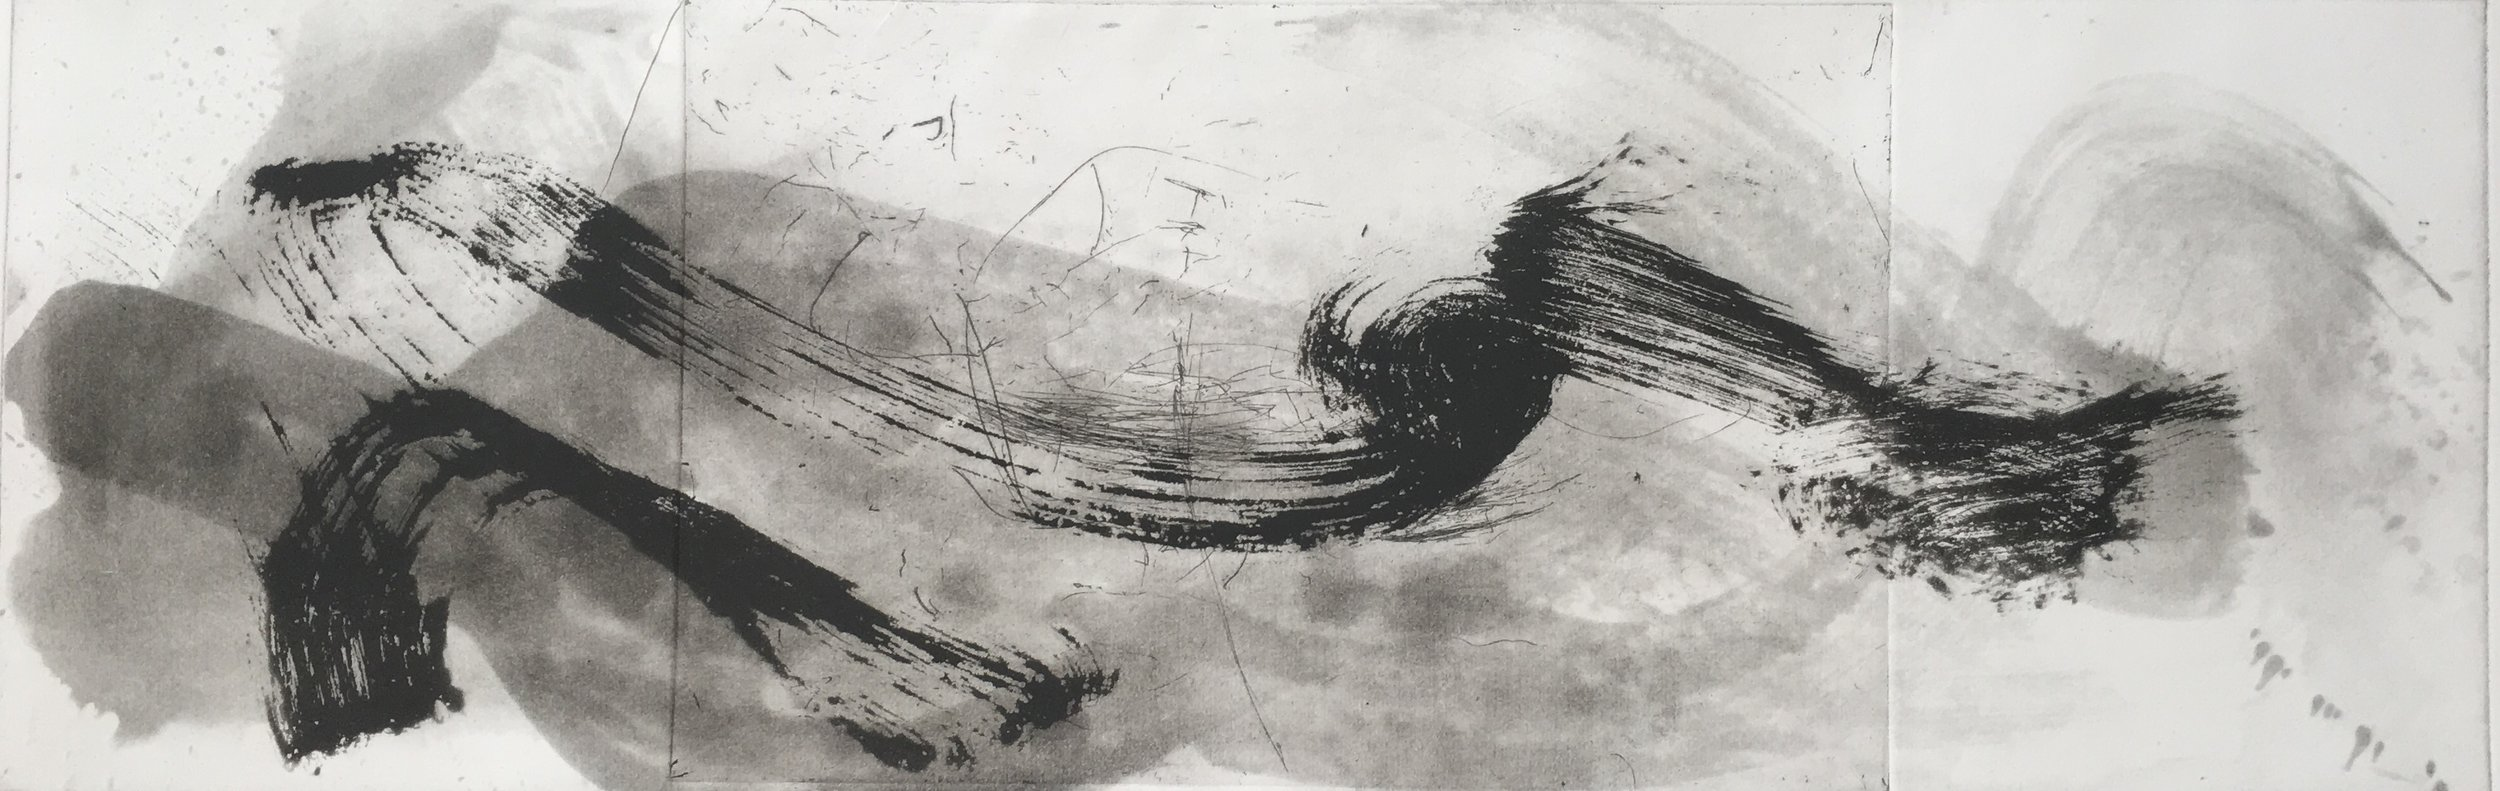 Geraldine van Heemstra - Between Sound and Movement, 2018, Spitbite, sugar lift aquatint and hard ground etching on Hahnemuhle paper, 59 x 19 cm.jpg